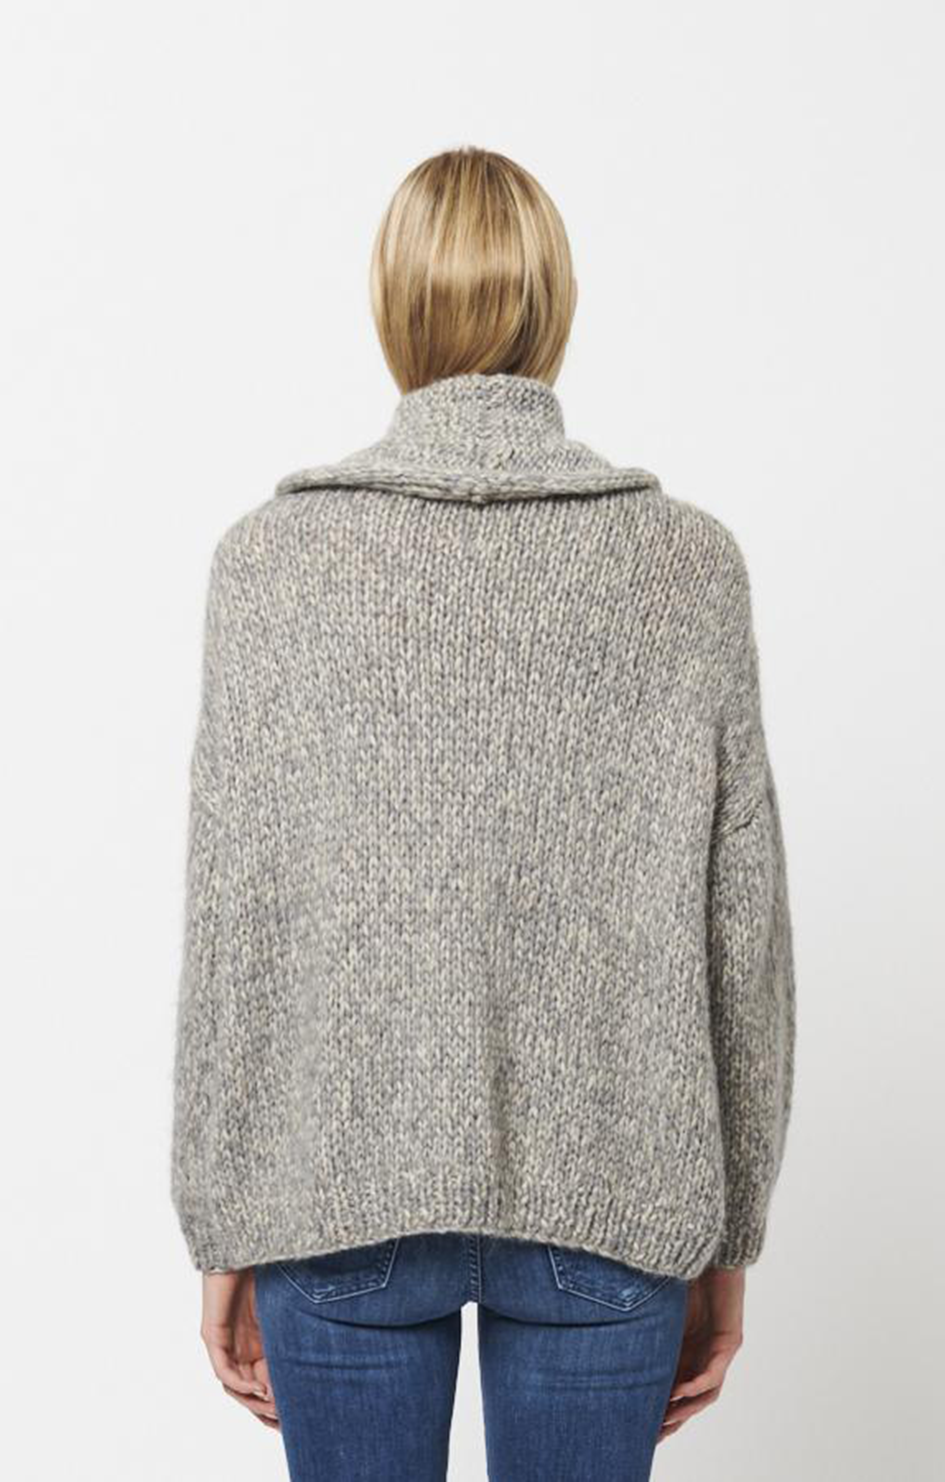 Olga Knit Sweater - Wheatfield